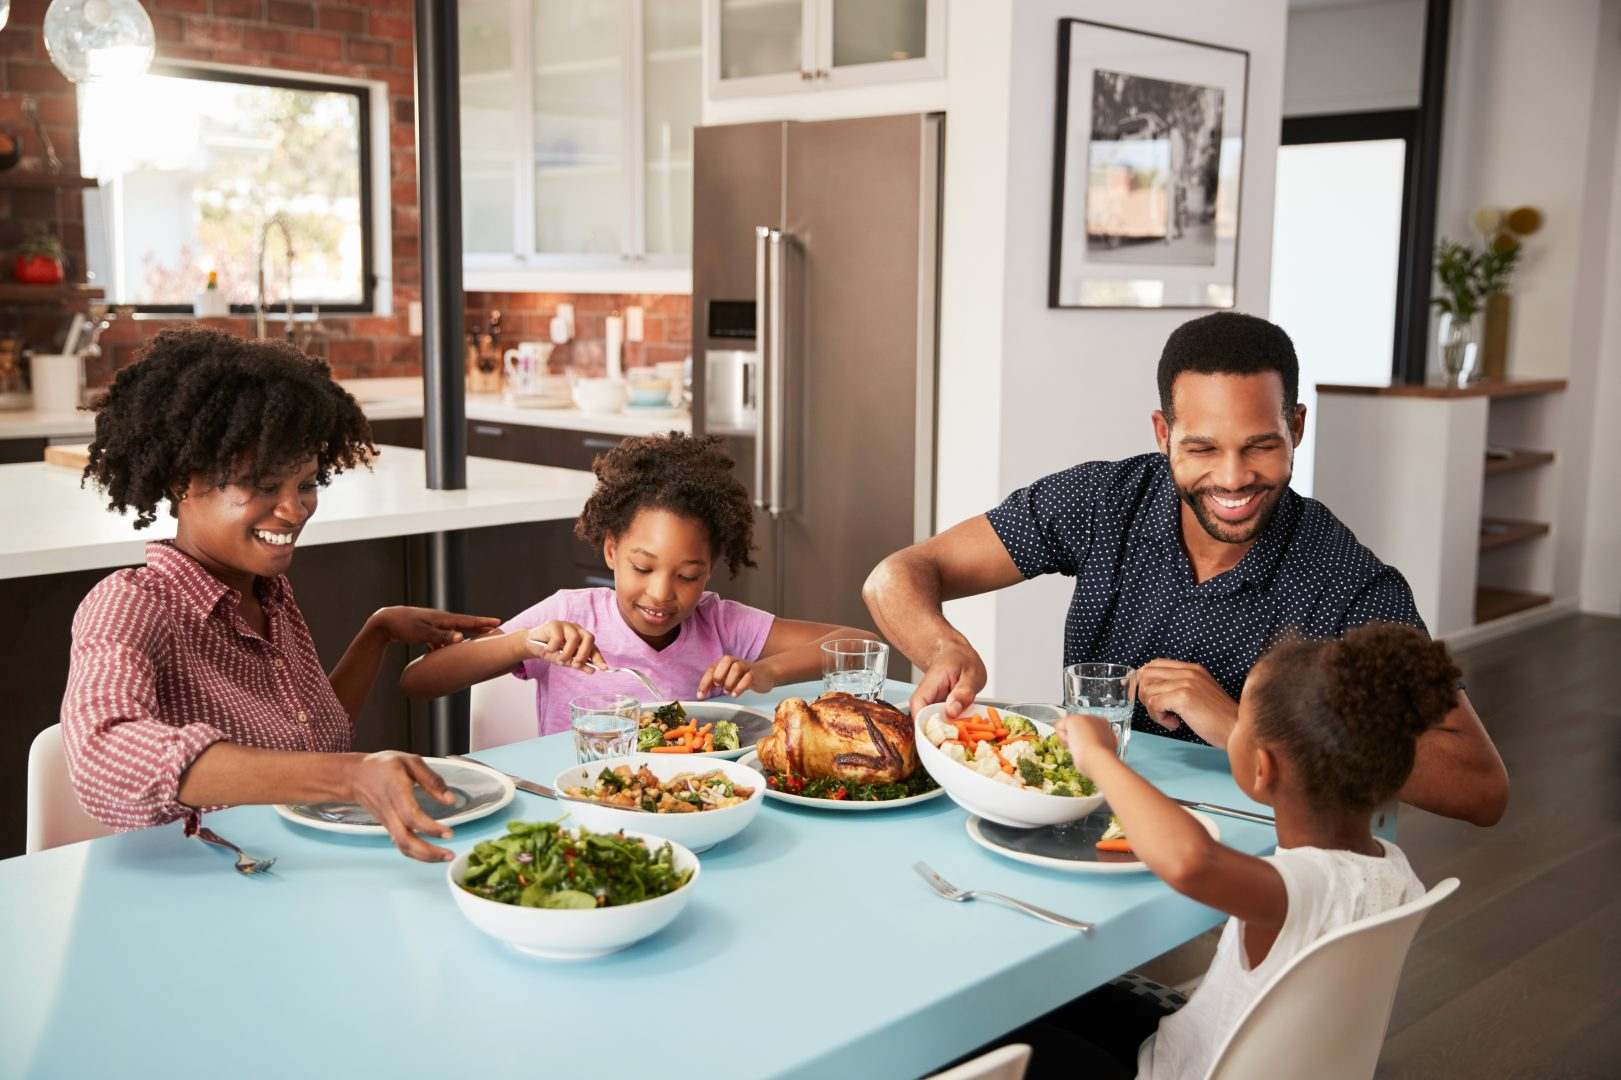 family of four eating dinner together while practicing social distancing